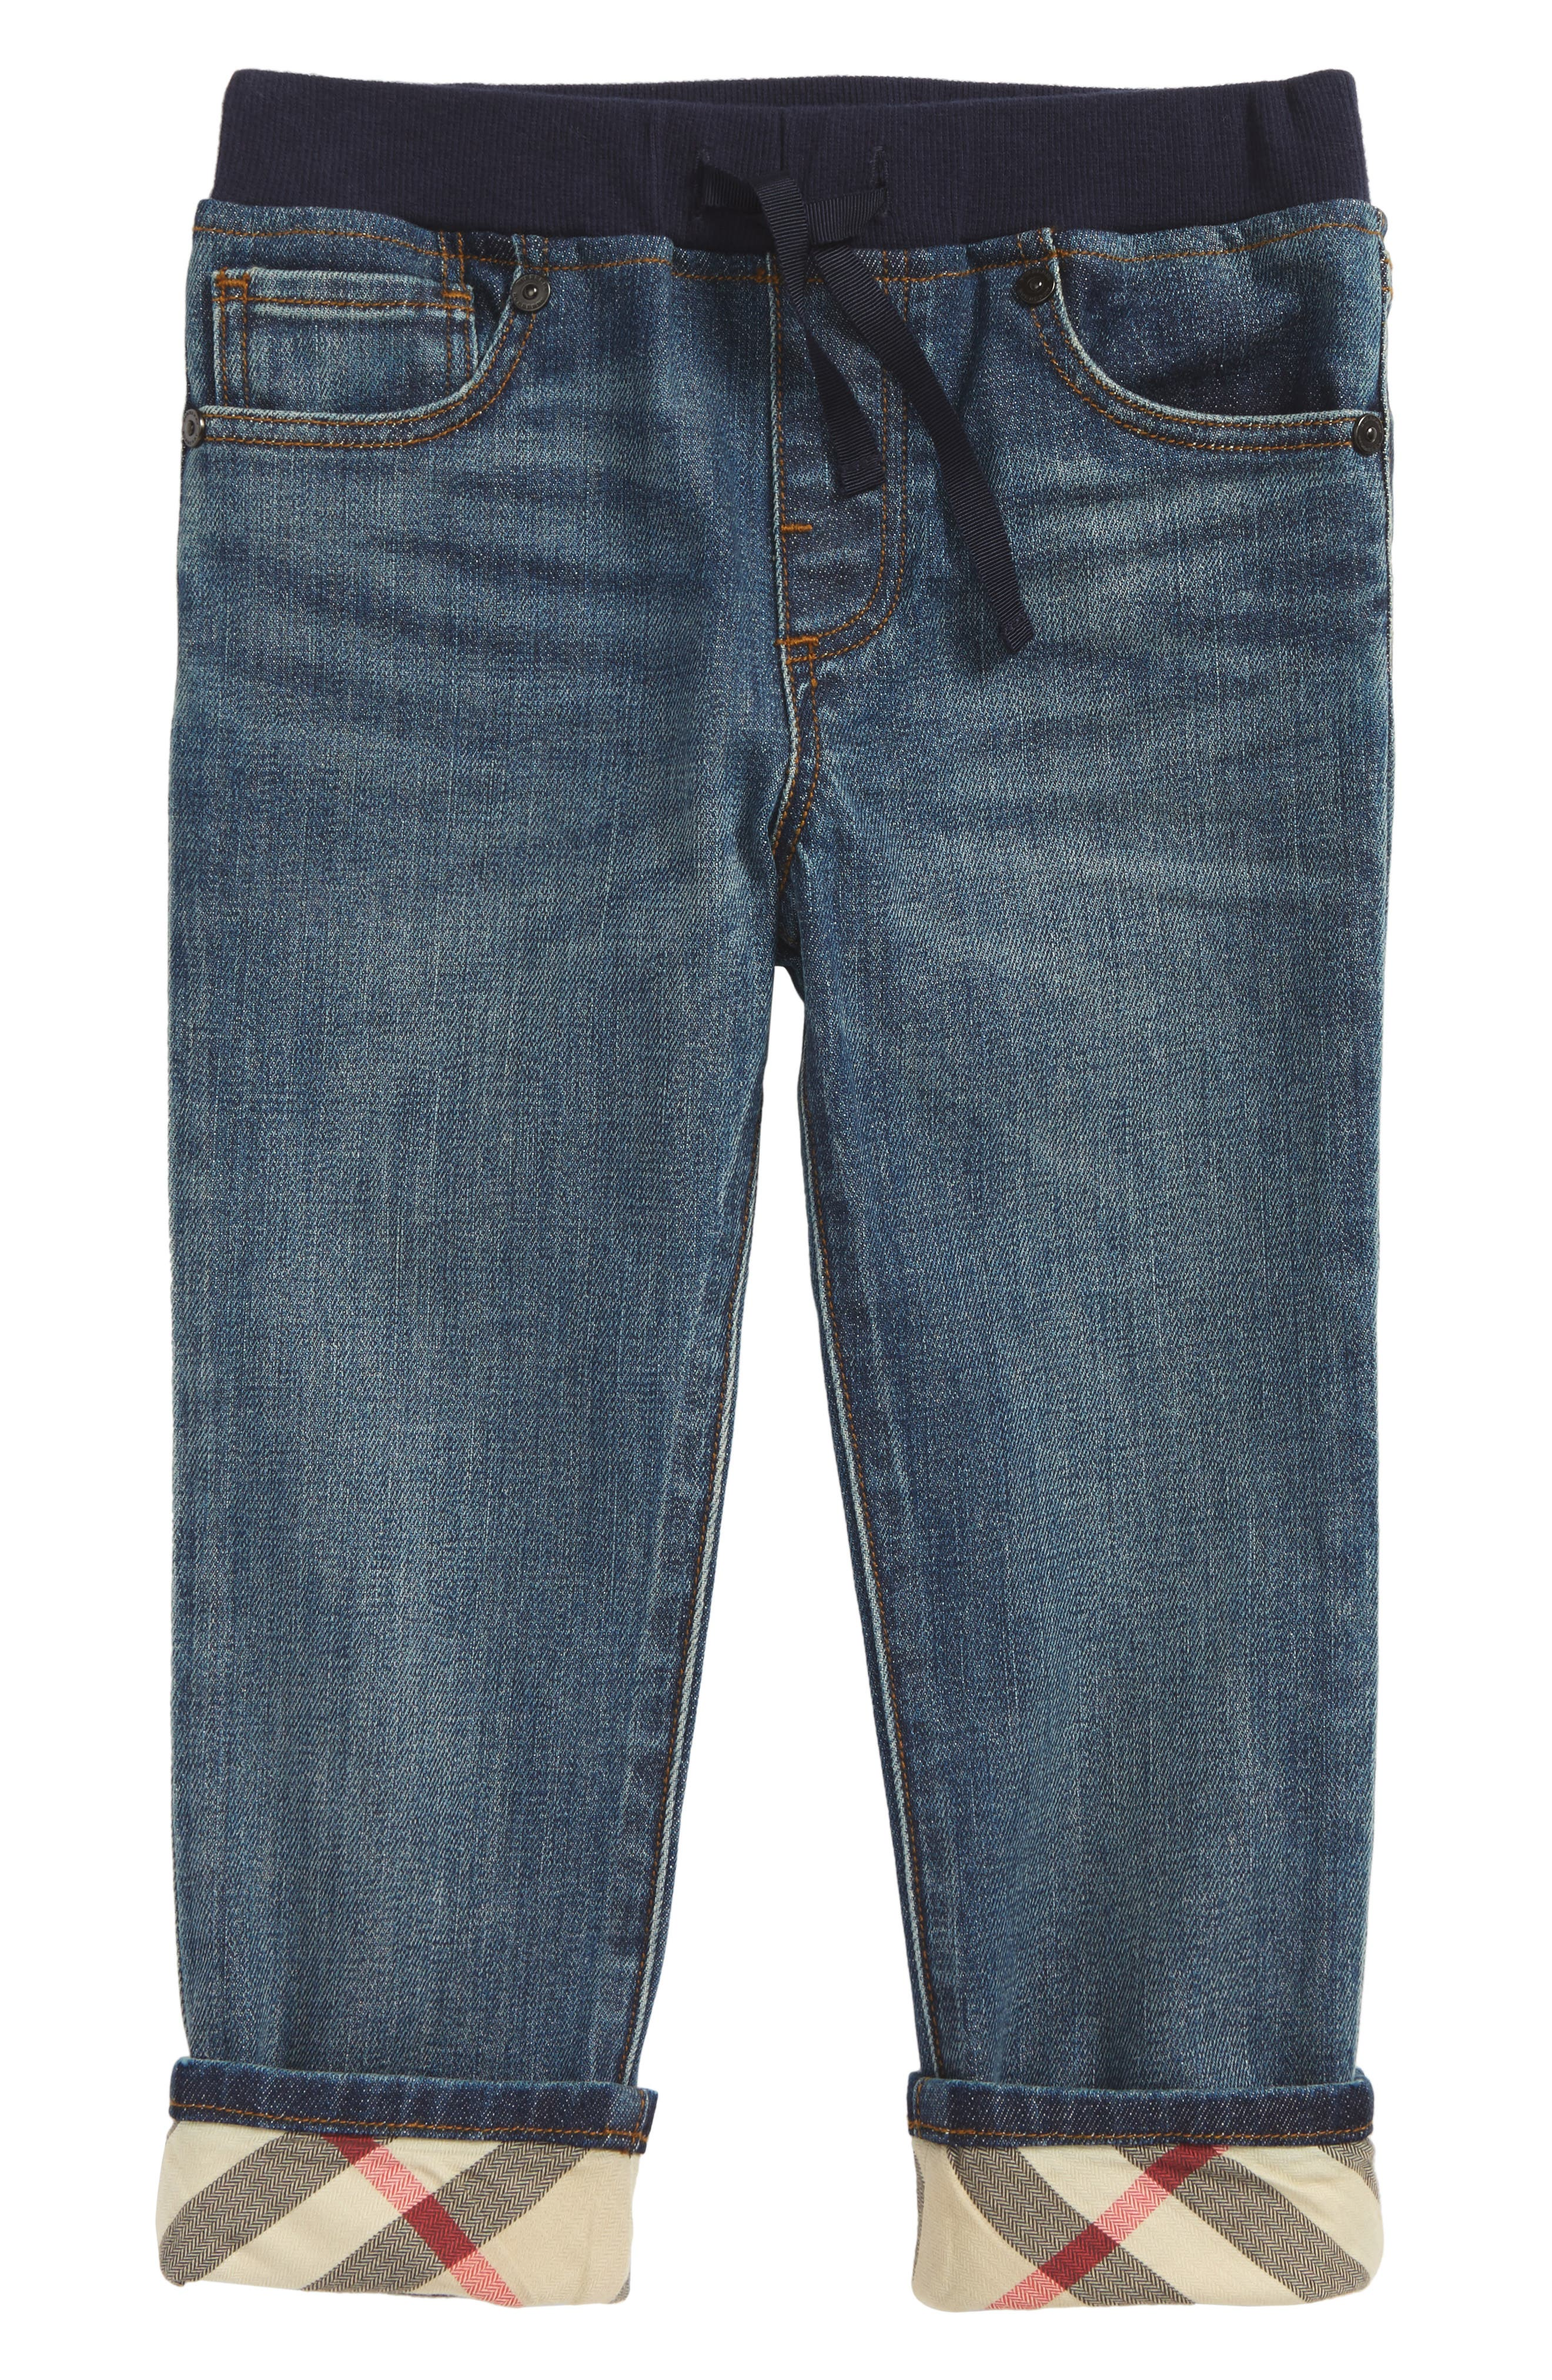 Alternate Image 1 Selected - Burberry Check Cuff Pull-On Jeans (Toddler Boys)